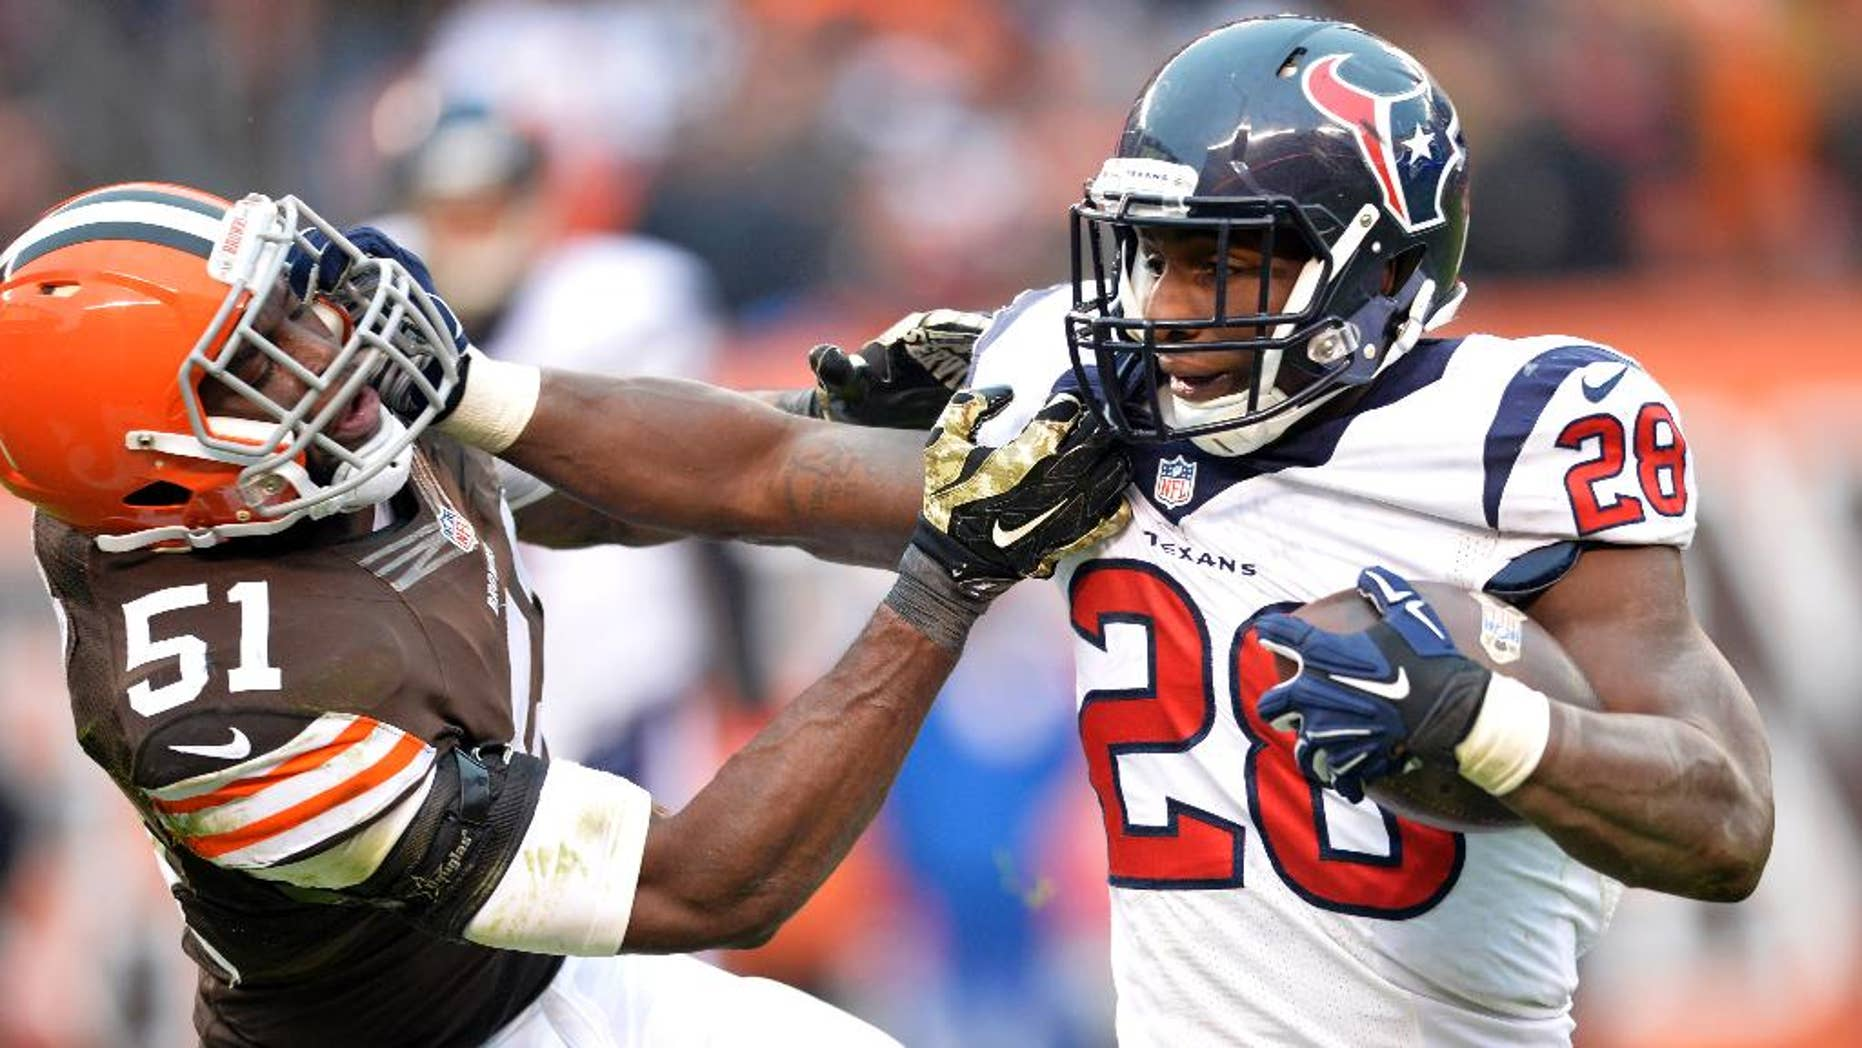 Houston Texans running back Alfred Blue (28) fights for yardage against Cleveland Browns outside linebacker Barkevious Mingo (51) in the fourth quarter of an NFL football game Sunday, Nov. 16, 2014, in Cleveland. (AP Photo/David Richard)